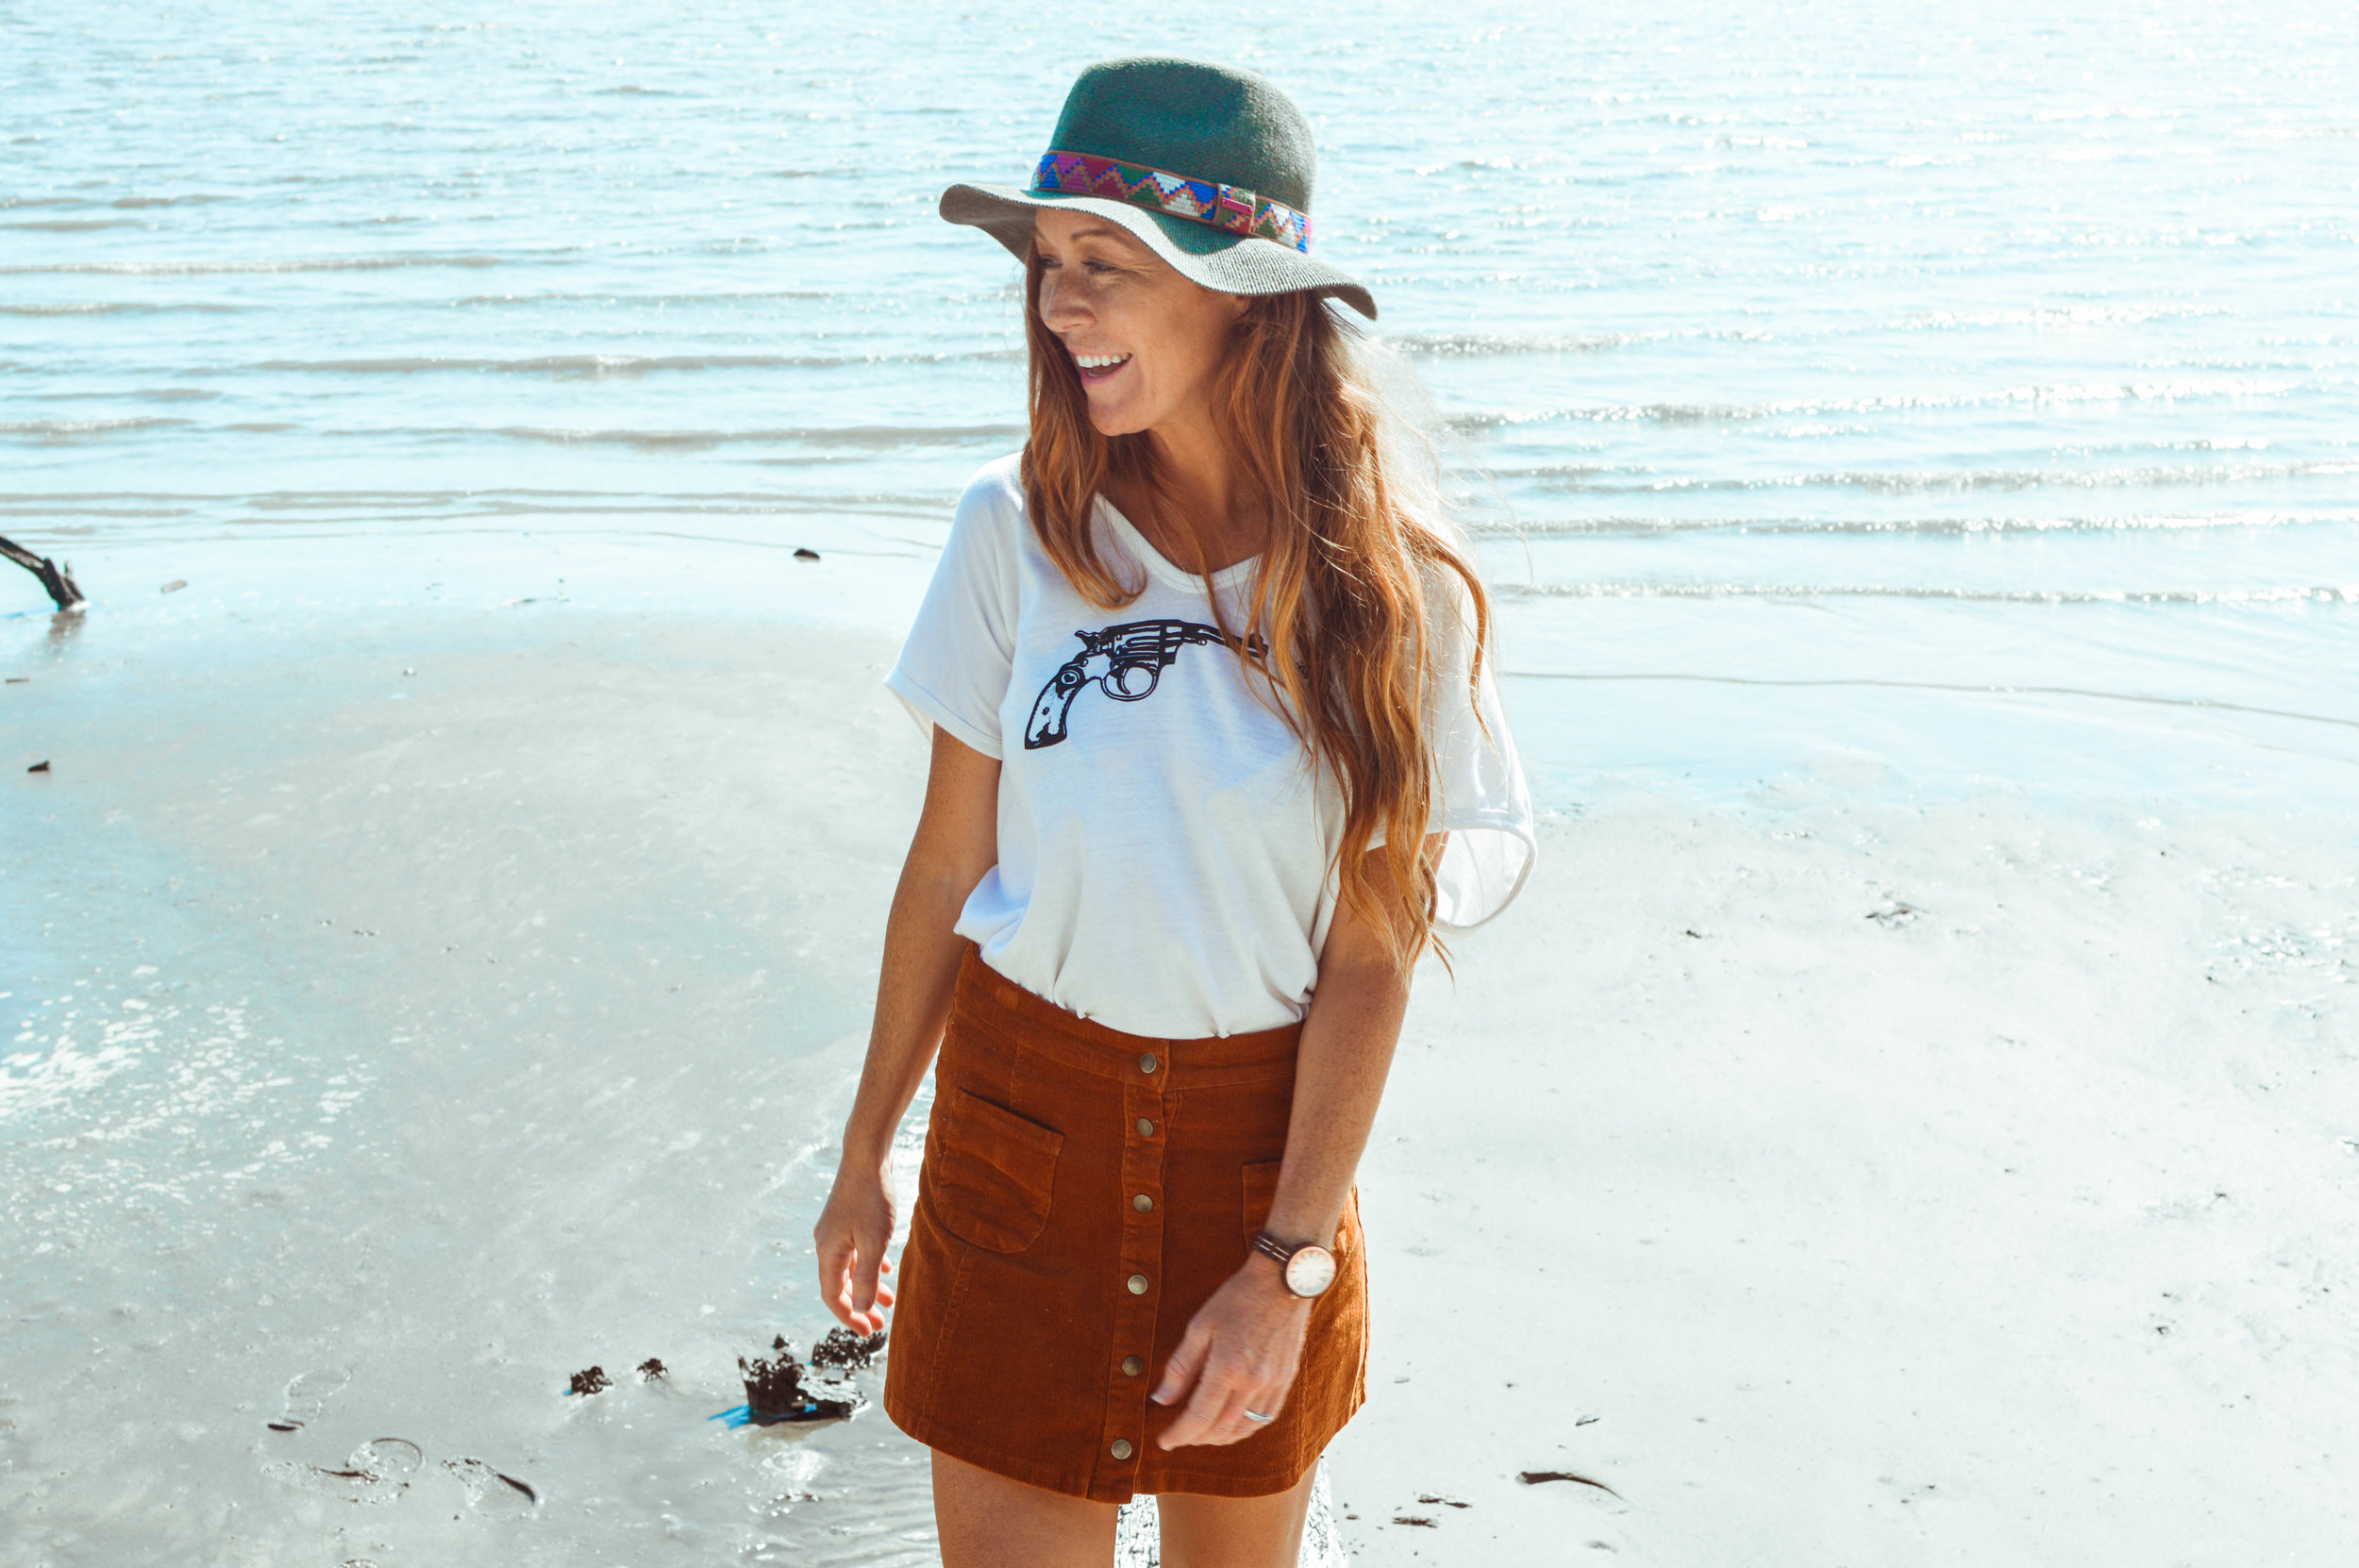 Women - Bikinis, Good Hats, Clothing, and Accessories